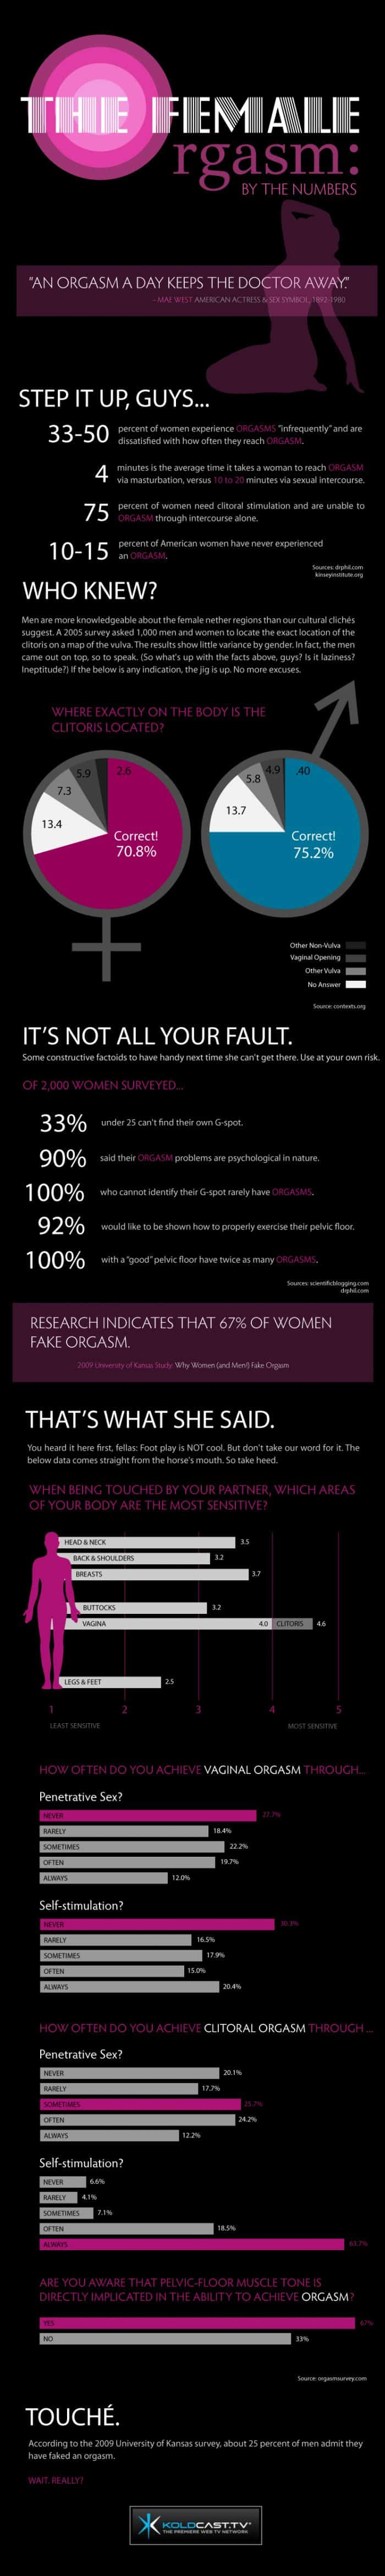 Female Orgasm Infographic